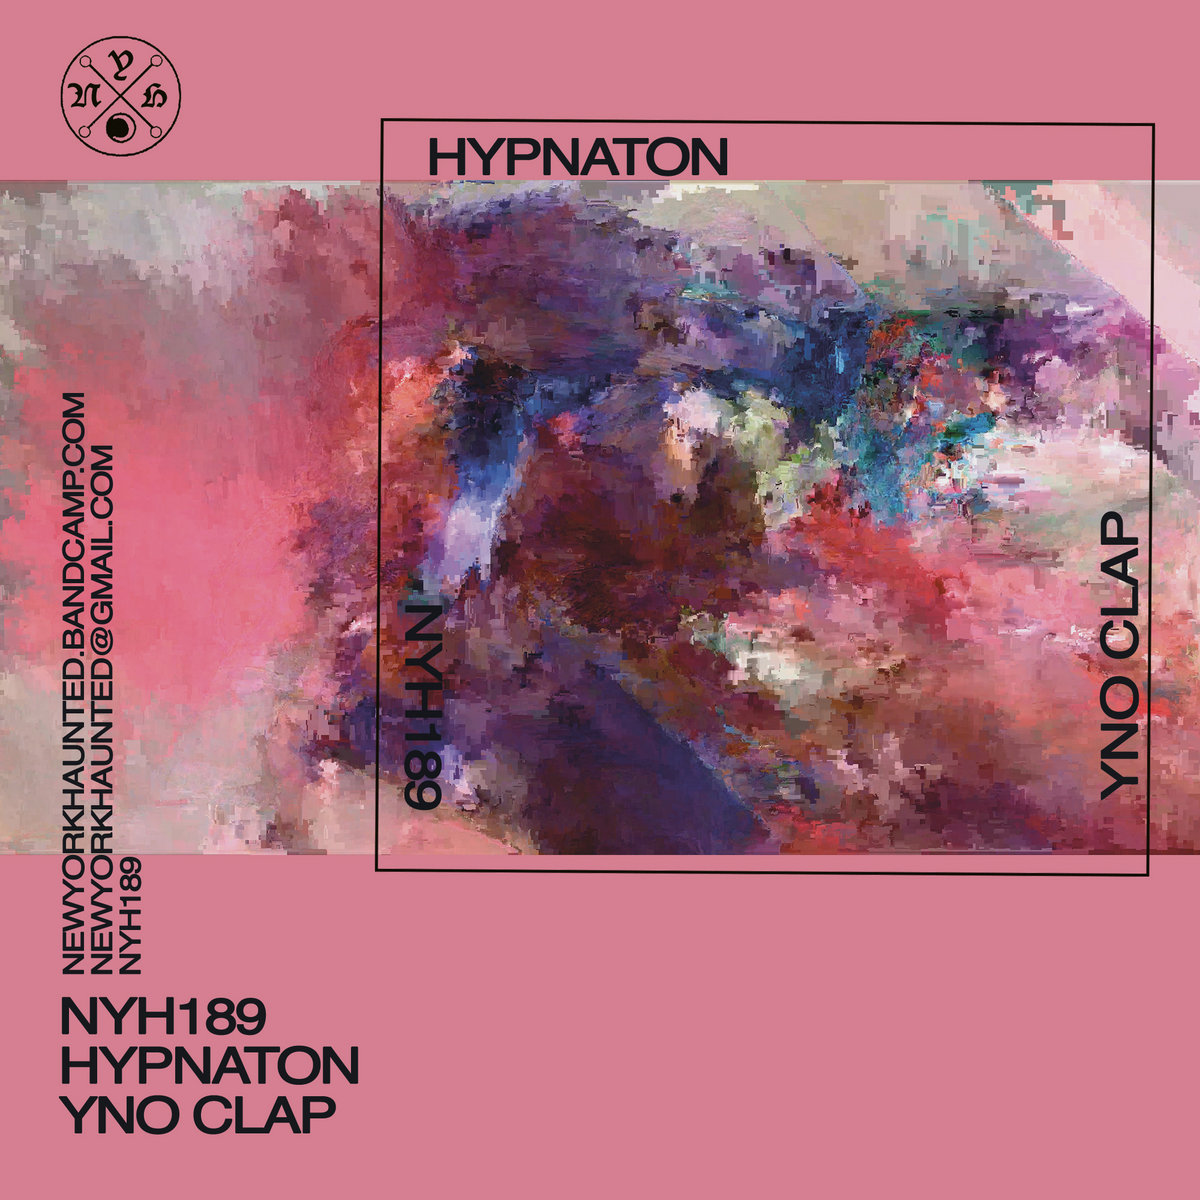 NYH189 Hypnaton – Yno Clap Release.